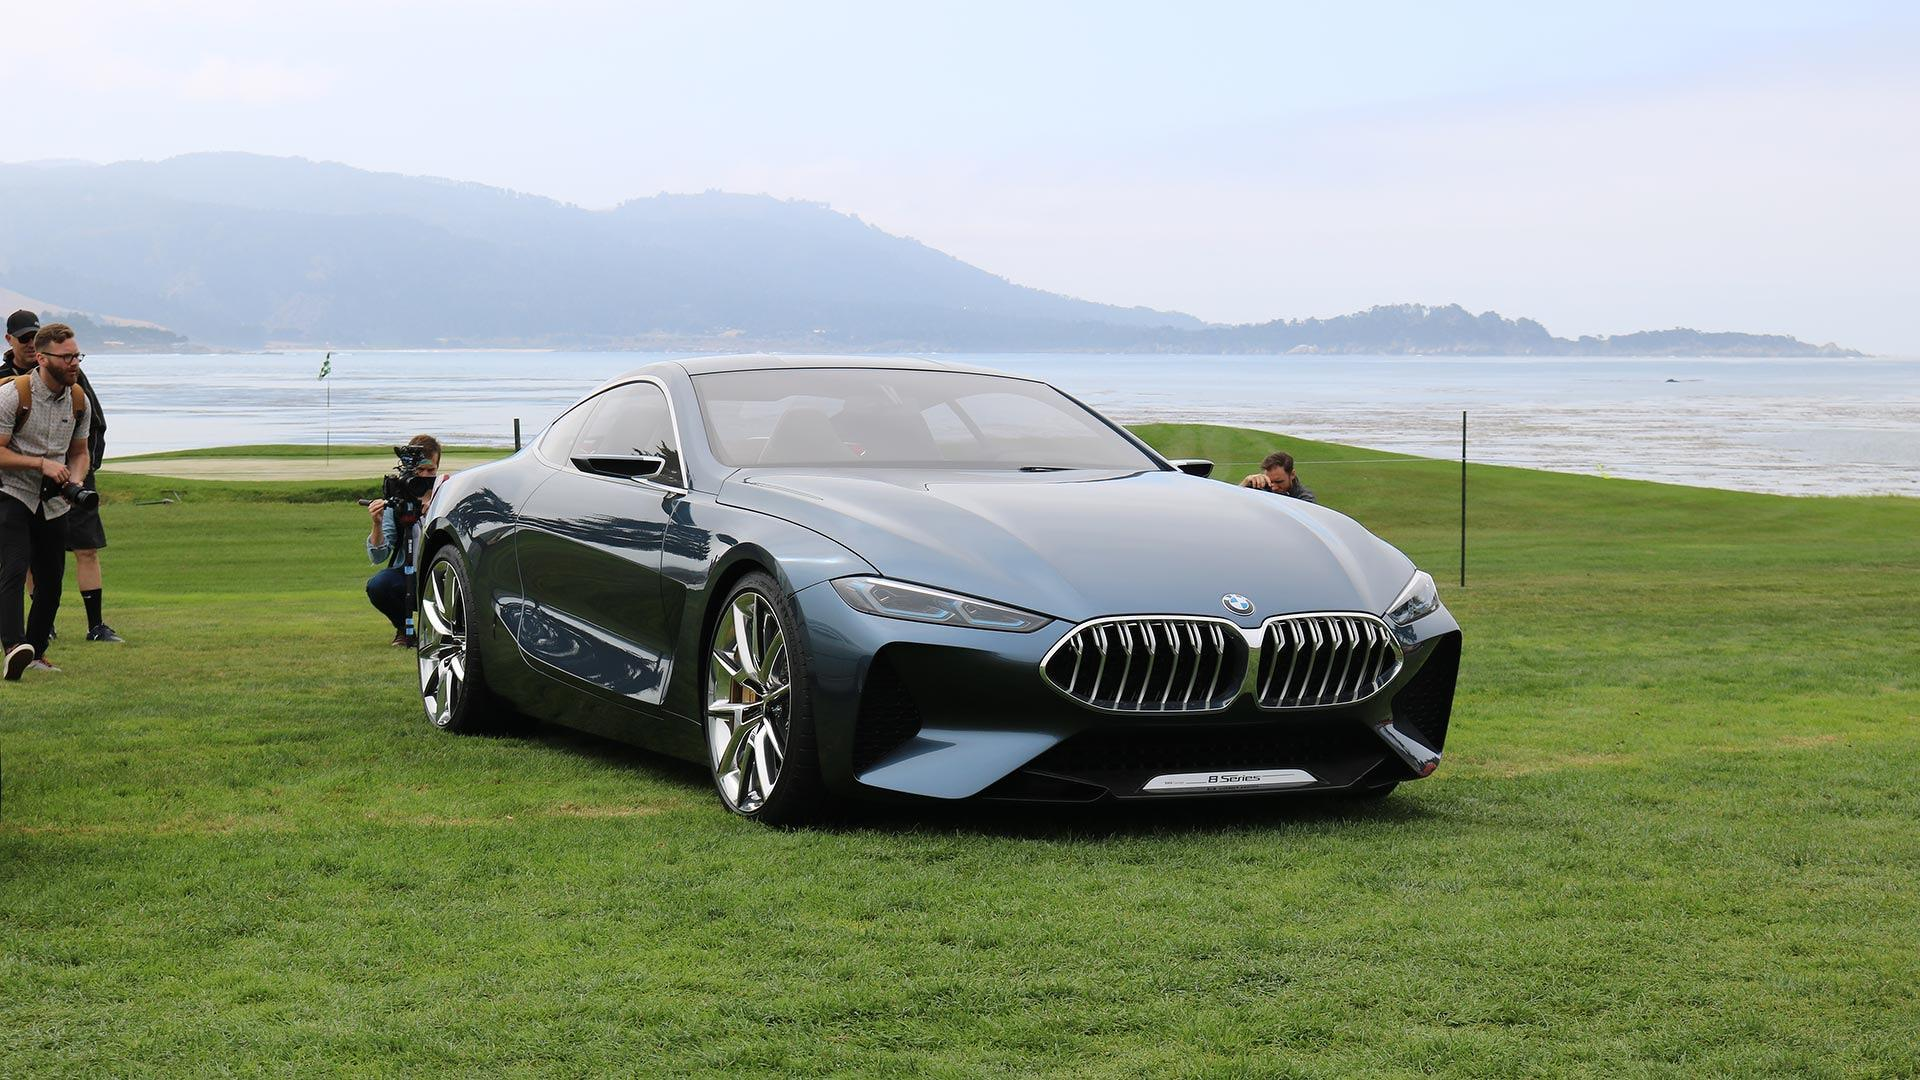 BMW 8 Series Concept Makes North American Debut At Pebble Beach